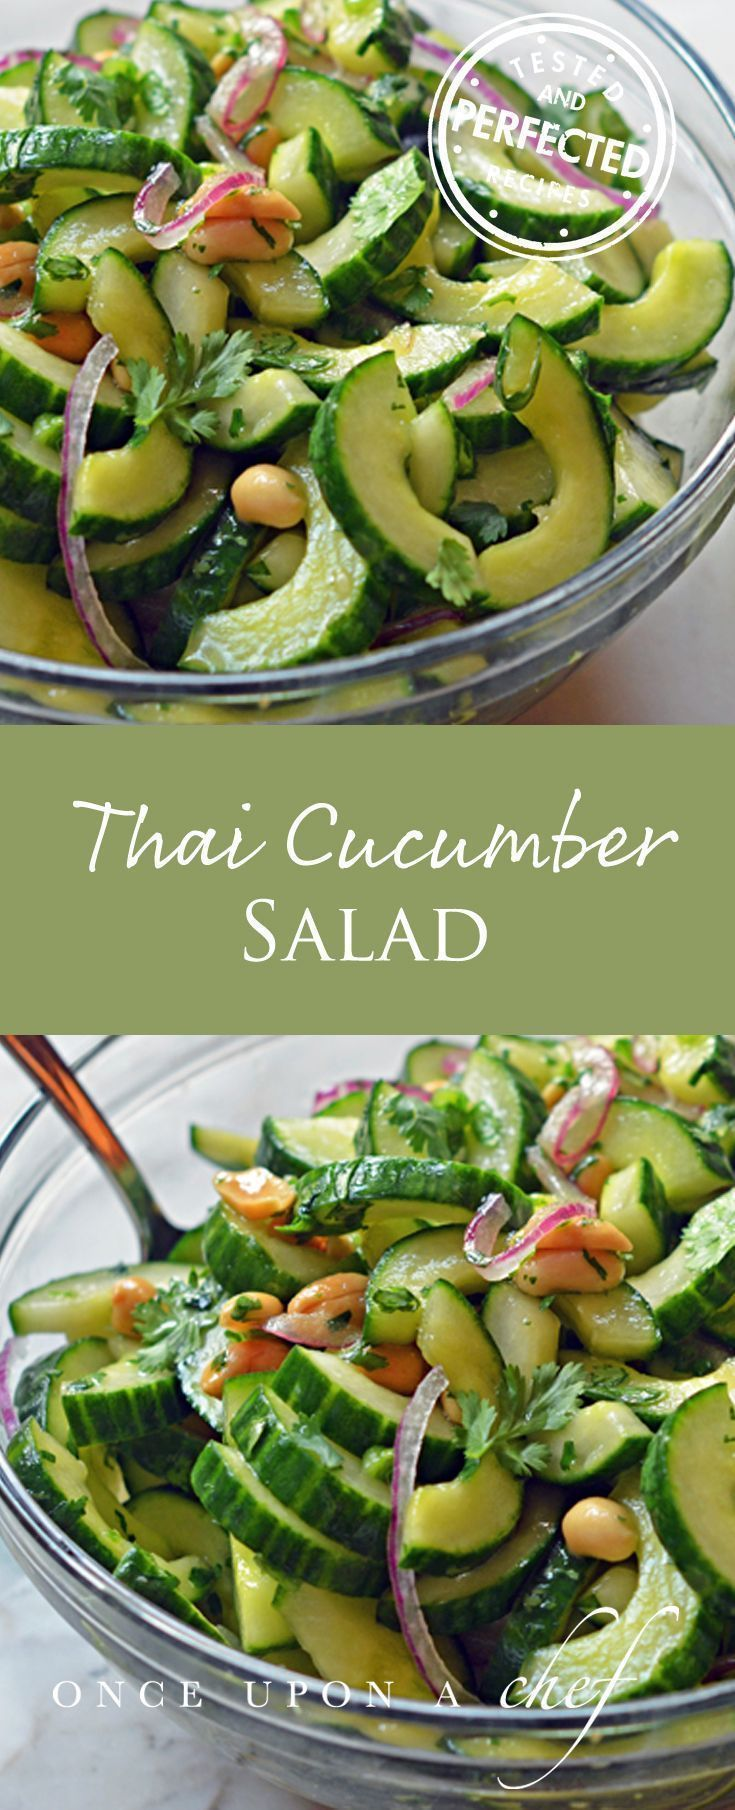 Thai Cucumber Salad with Peanuts #saladrecipes #thaisalad